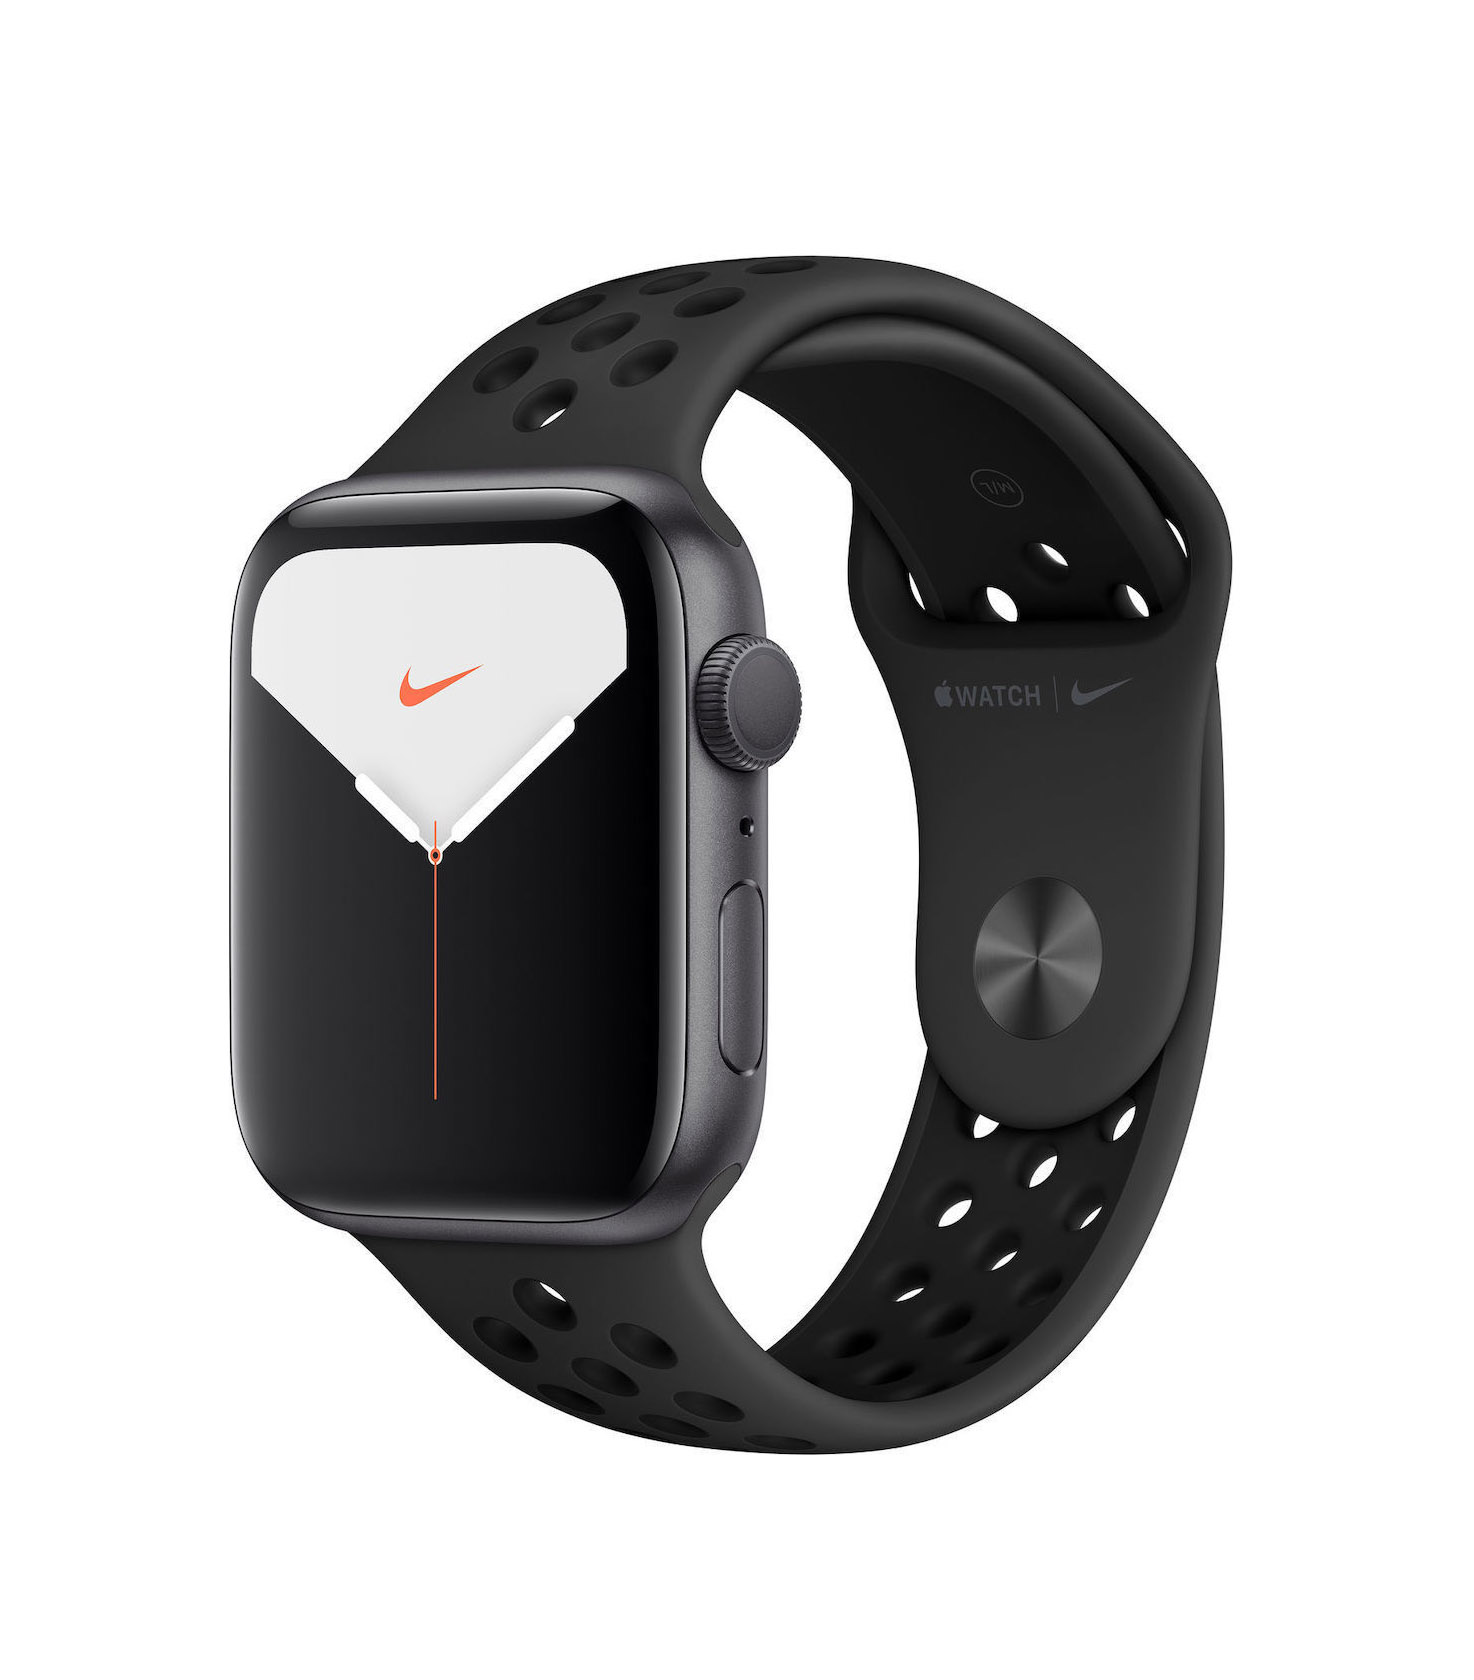 Apple Watch Series 5 Nike 40mm Aluminium Black Sport Band MX3T2 Πληρωμή έως 24 δόσεις*